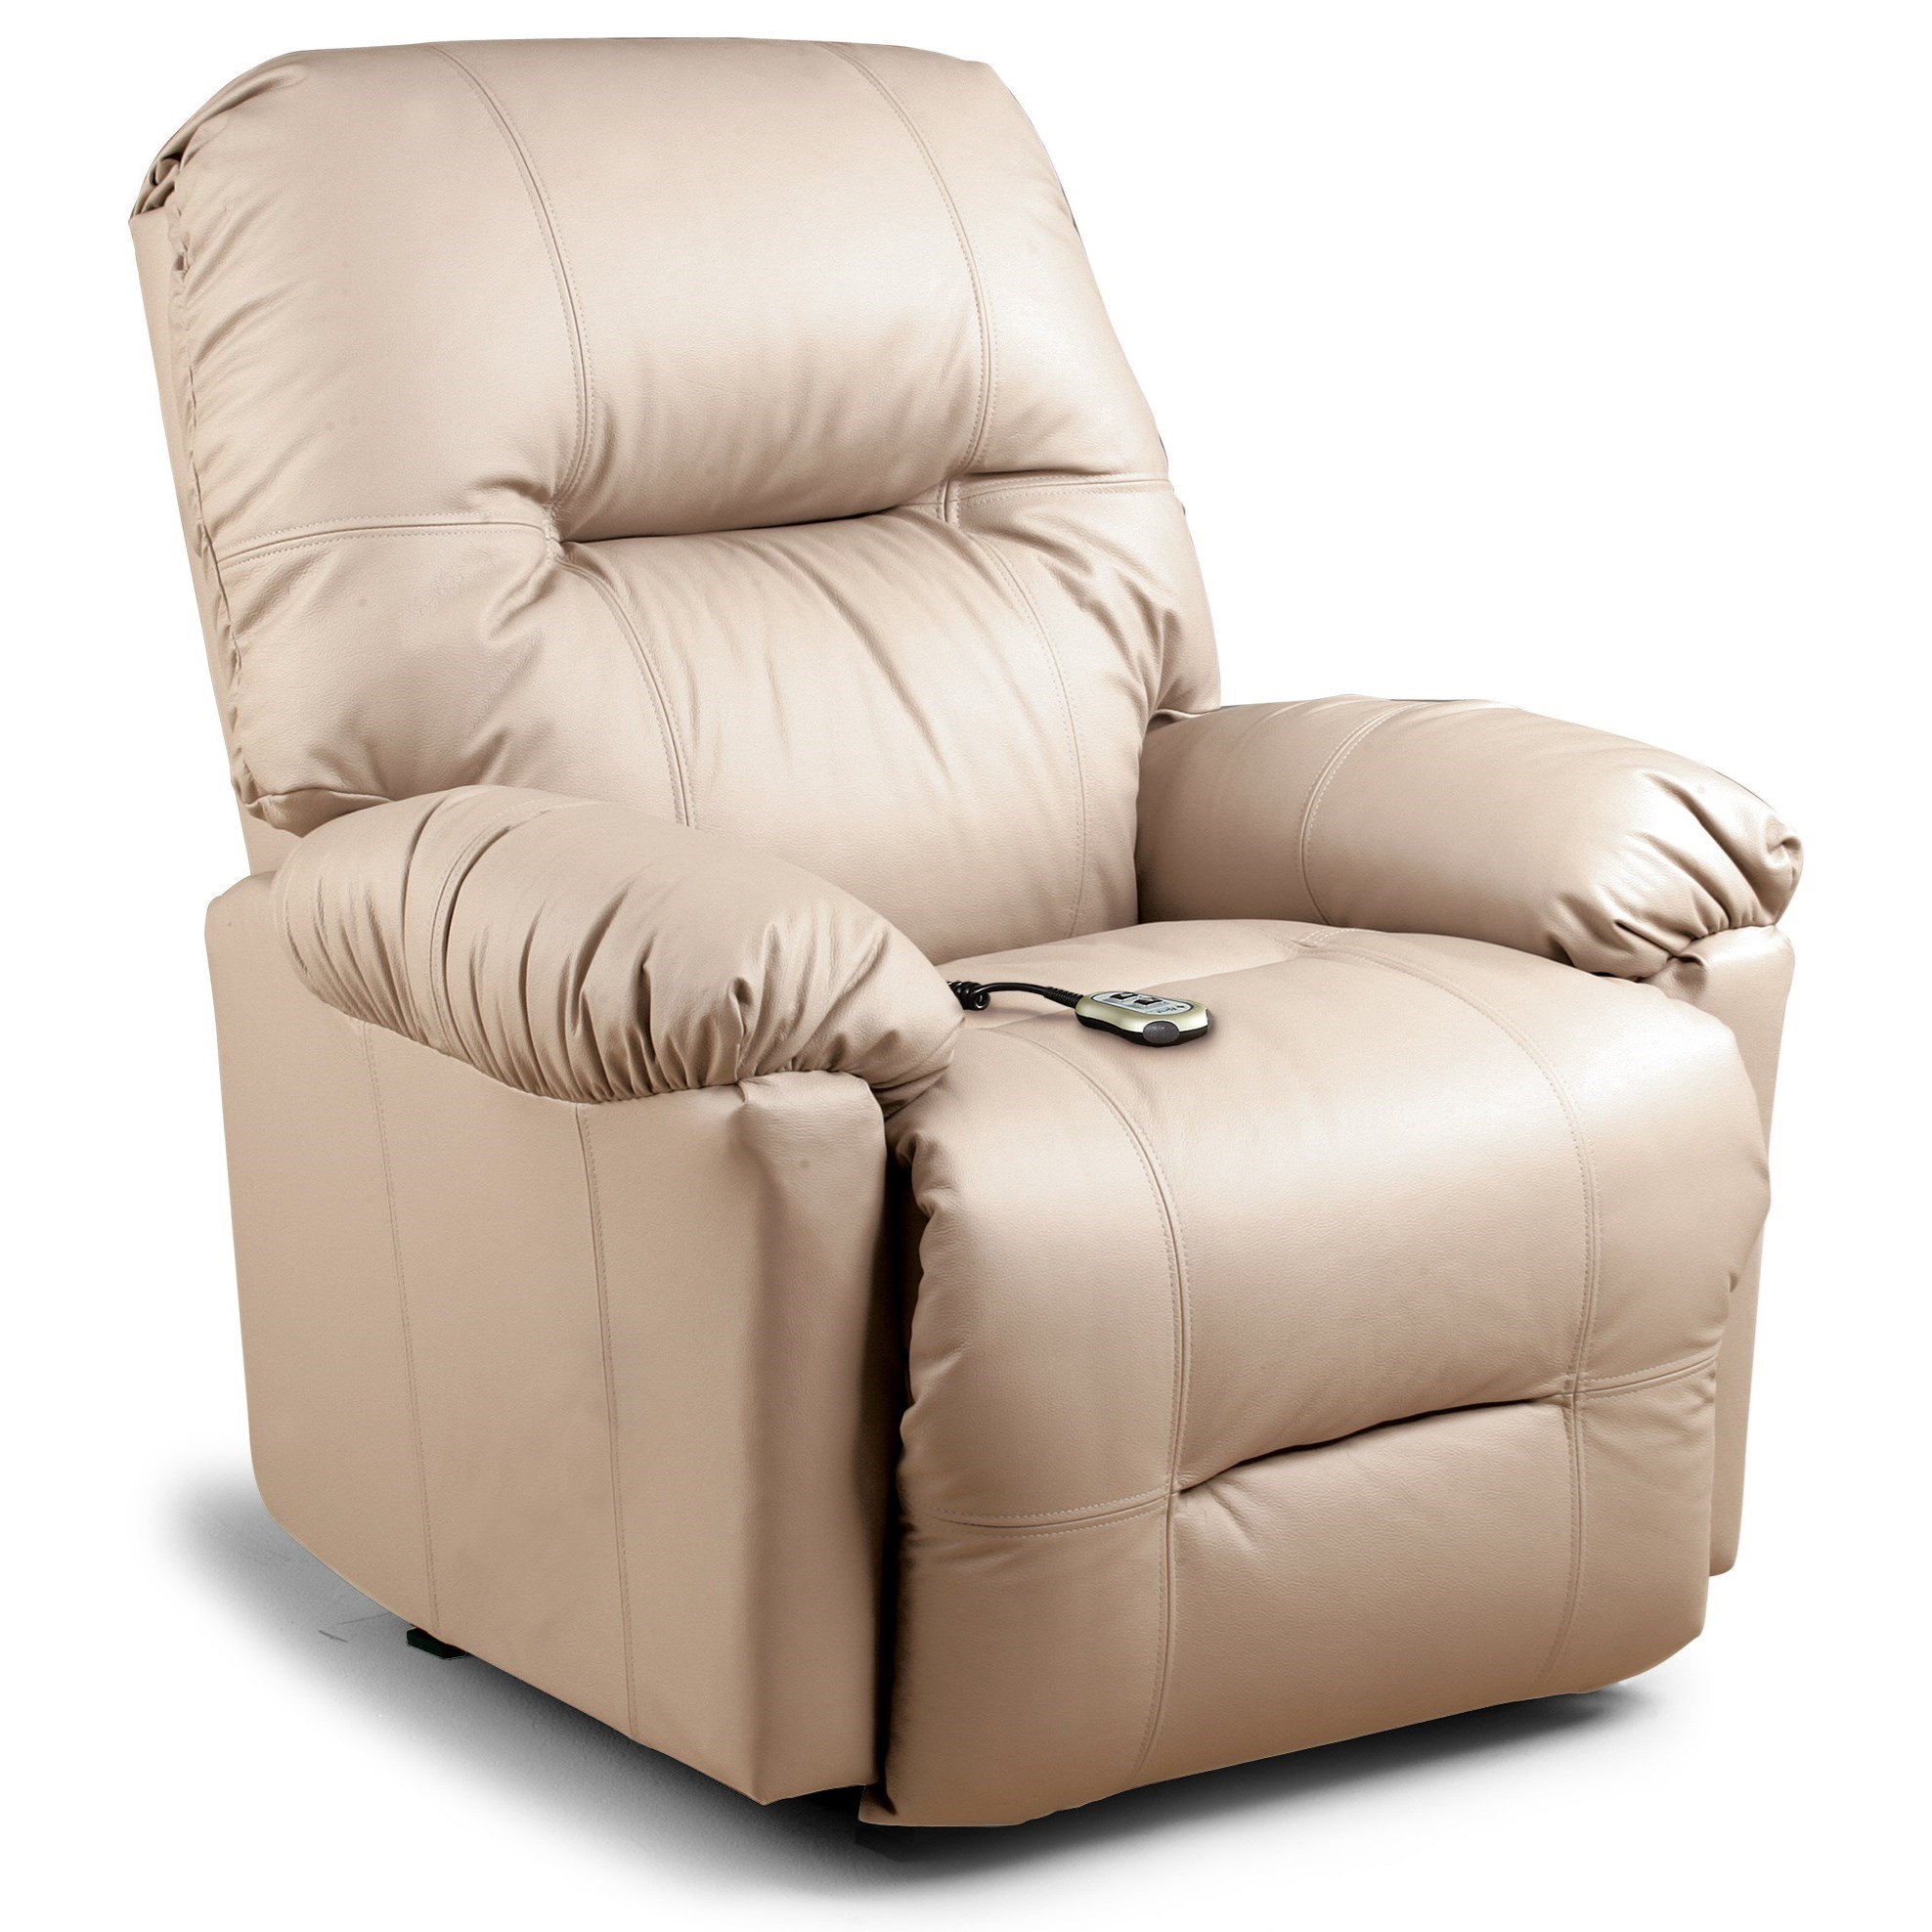 Petite Recliners Wynette Power Lift Recliner by Best Home Furnishings at Baer's Furniture